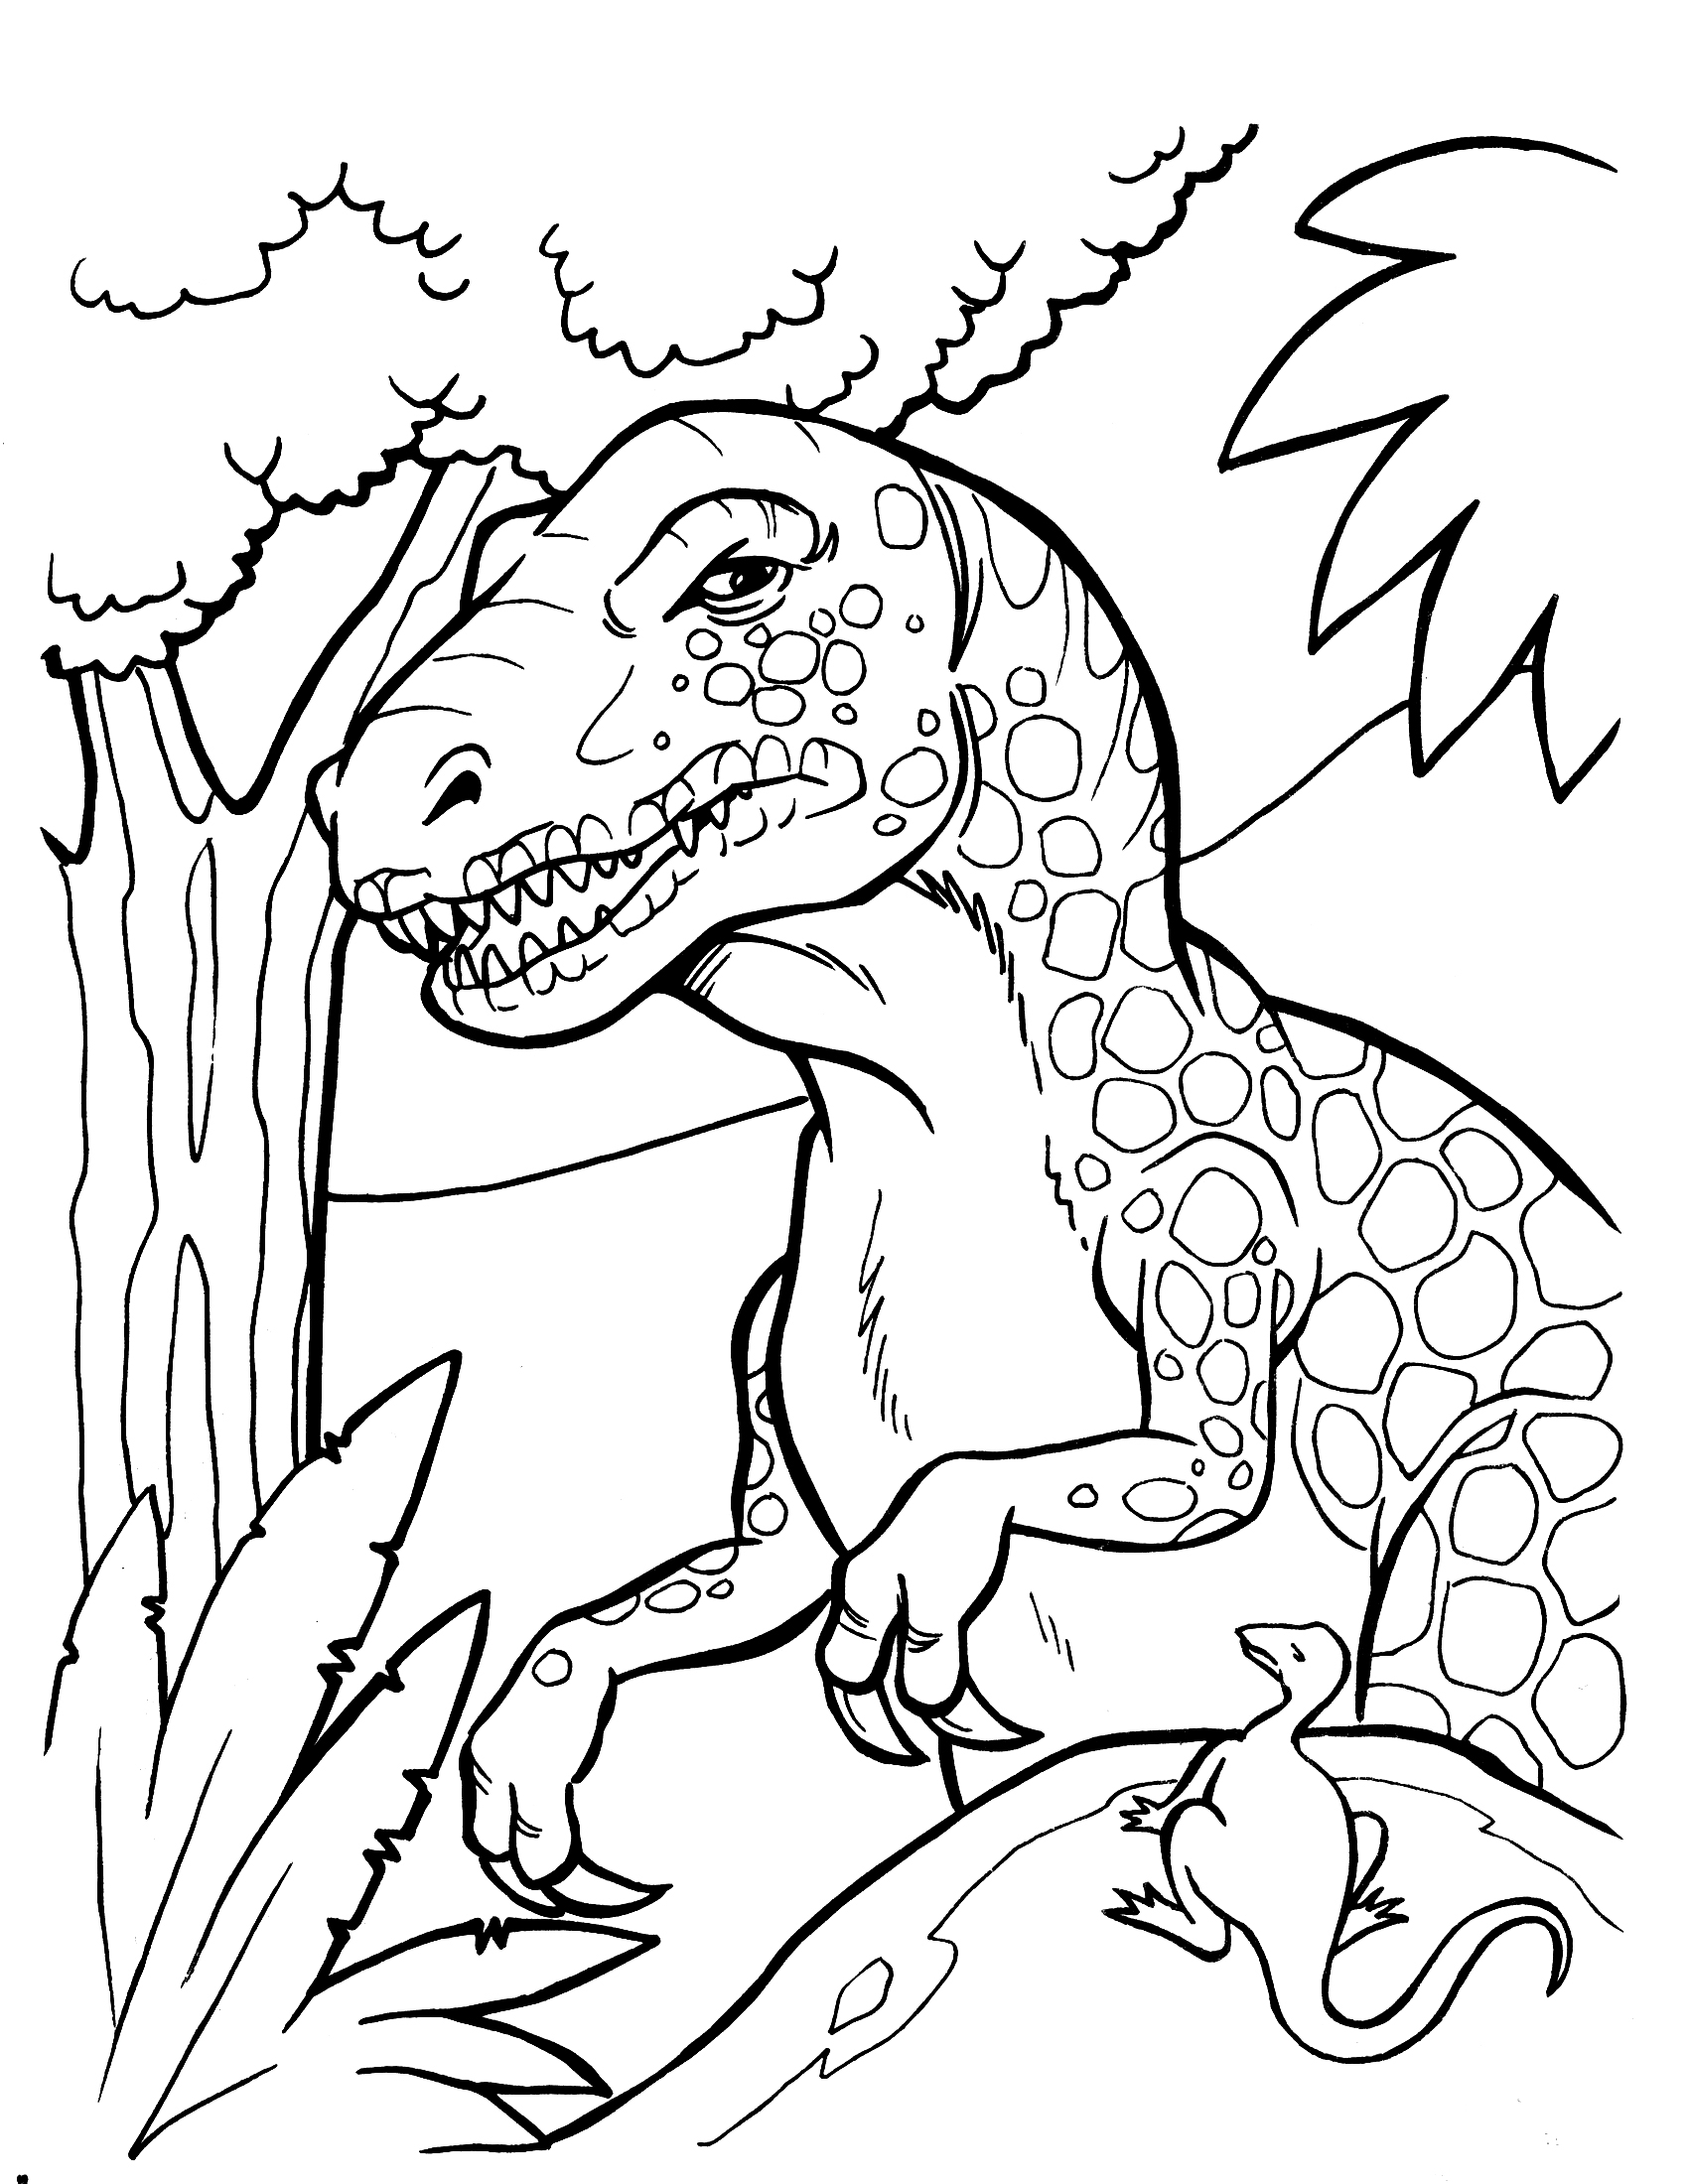 free printable coloring pages of dinosaurs baby dinosaur coloring pages for preschoolers cute pages dinosaurs coloring printable free of